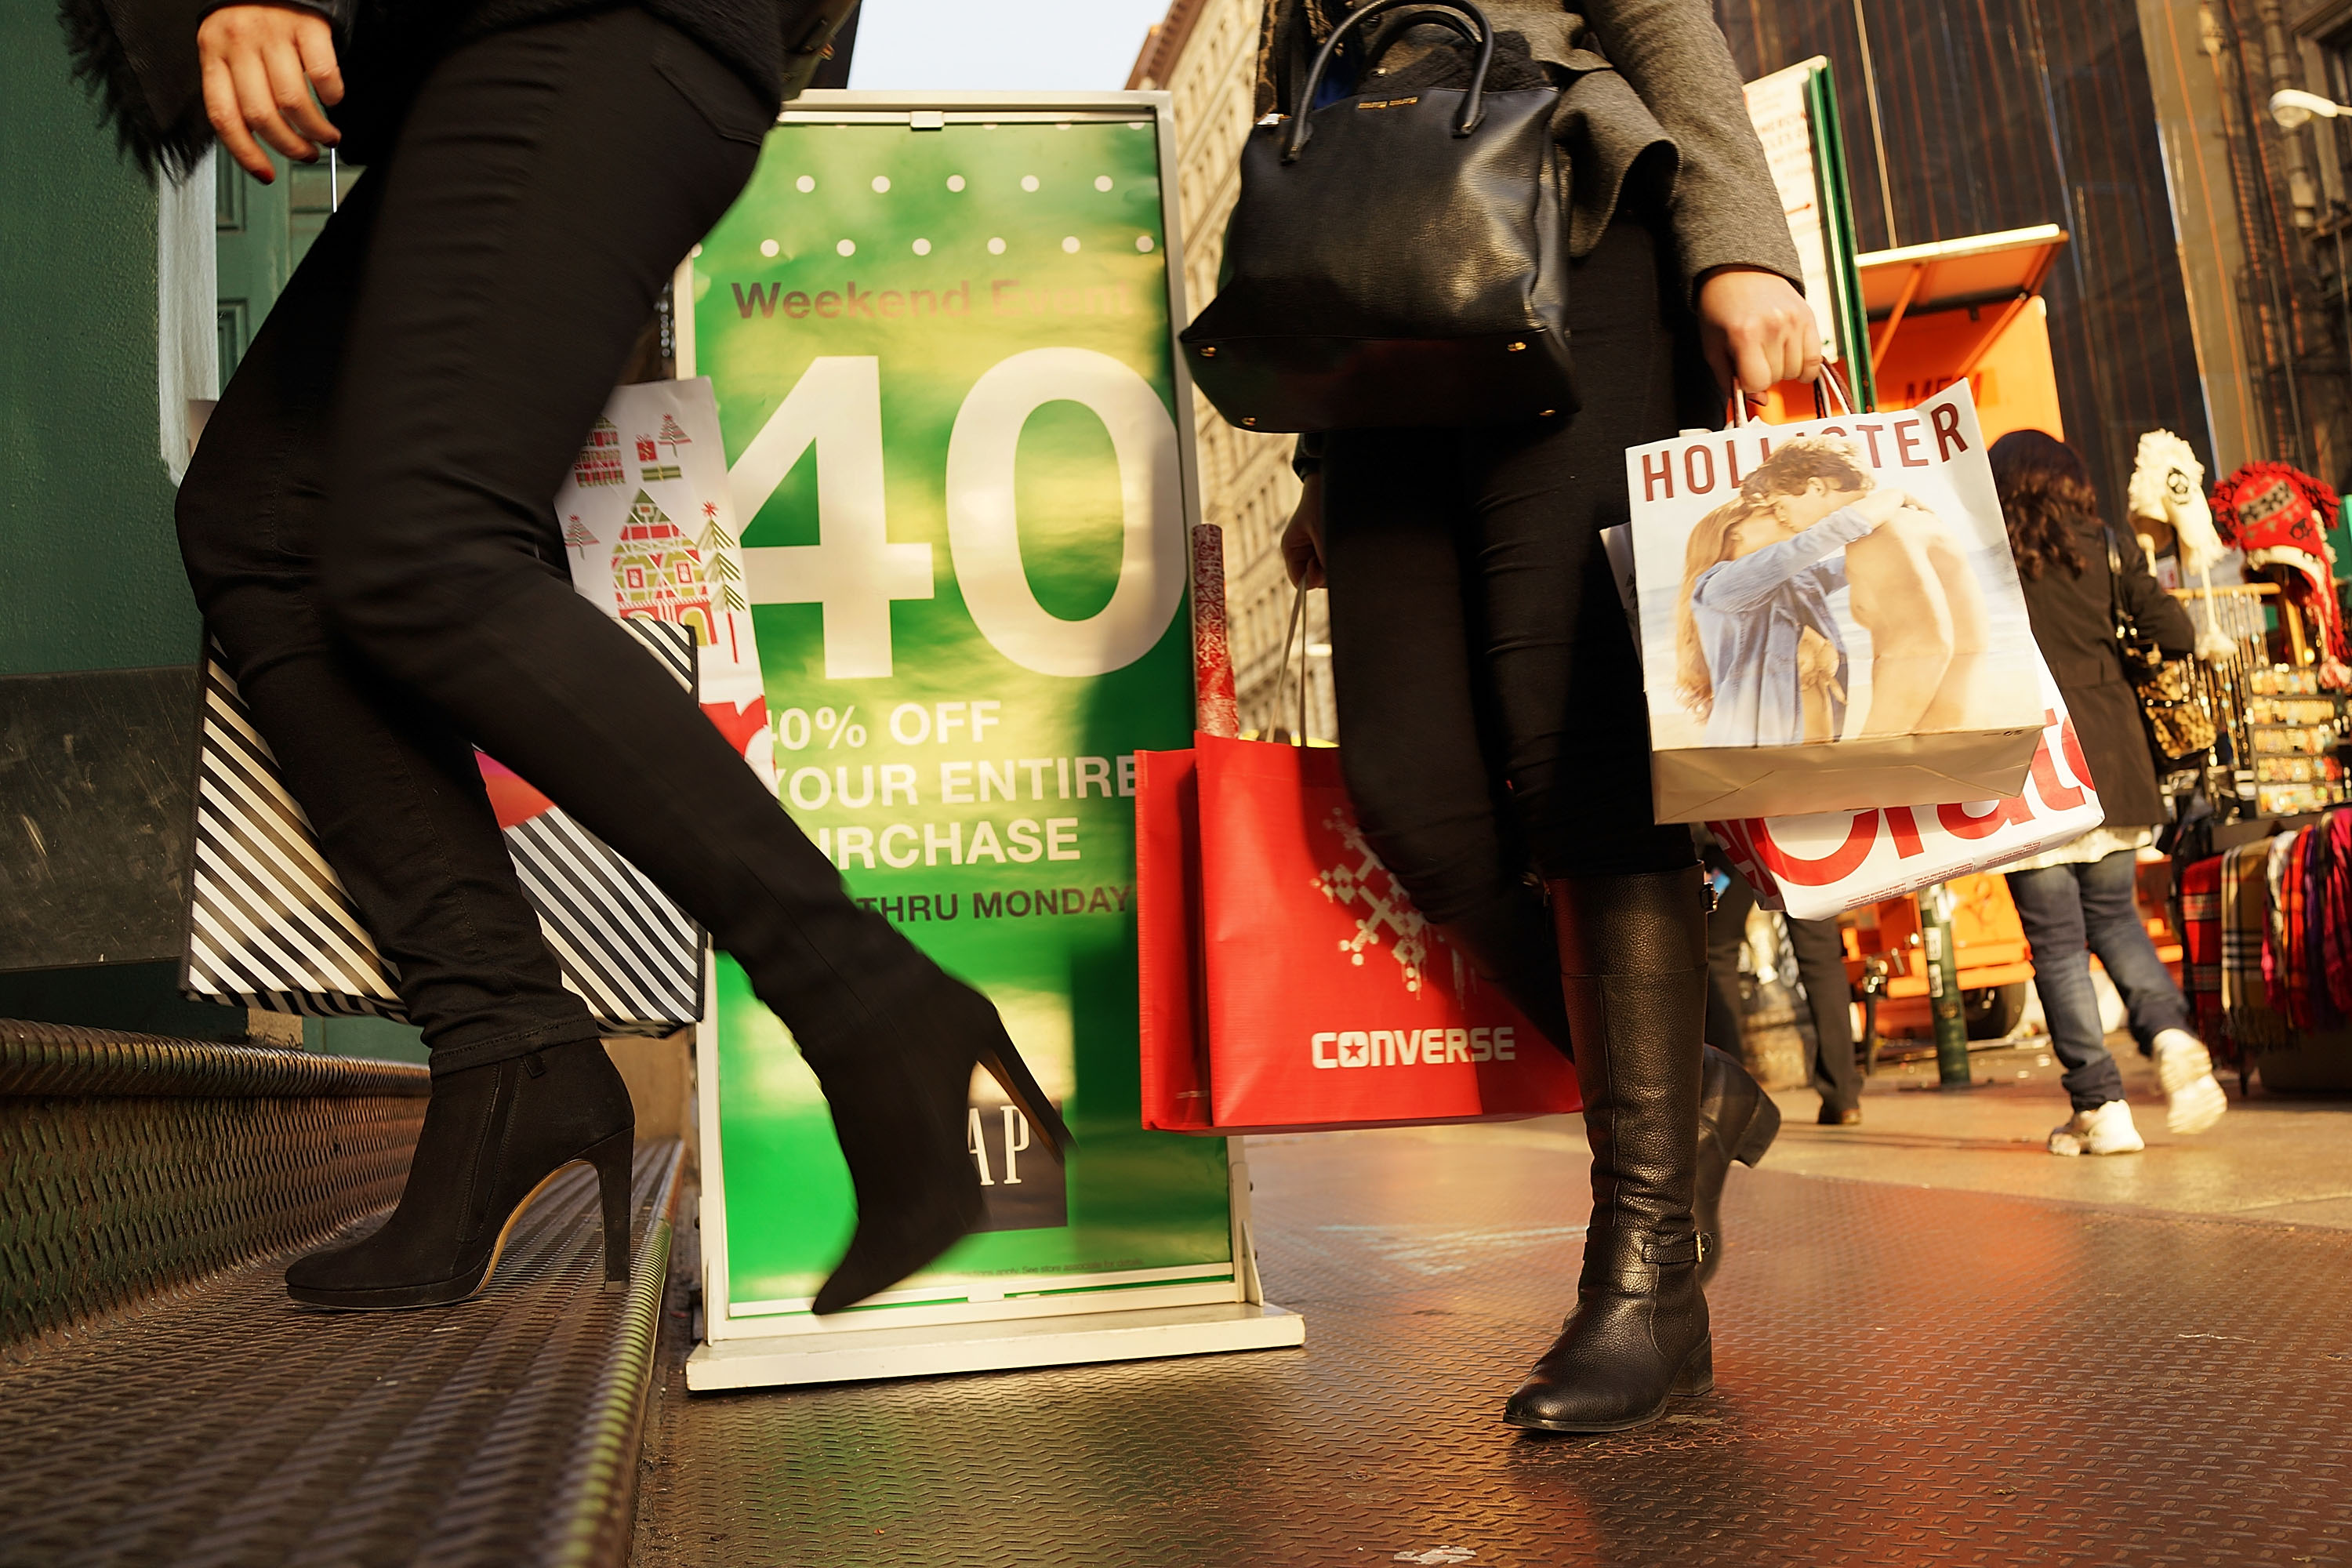 Retailers Seek Customers After First Decline In Black Friday Shopping Since 2009